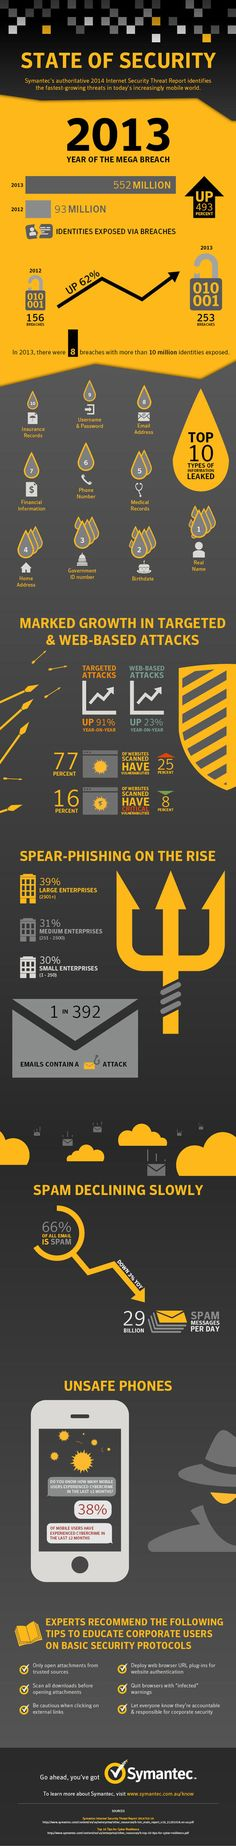 State of Security #infographic #Internet #Hacking #Security